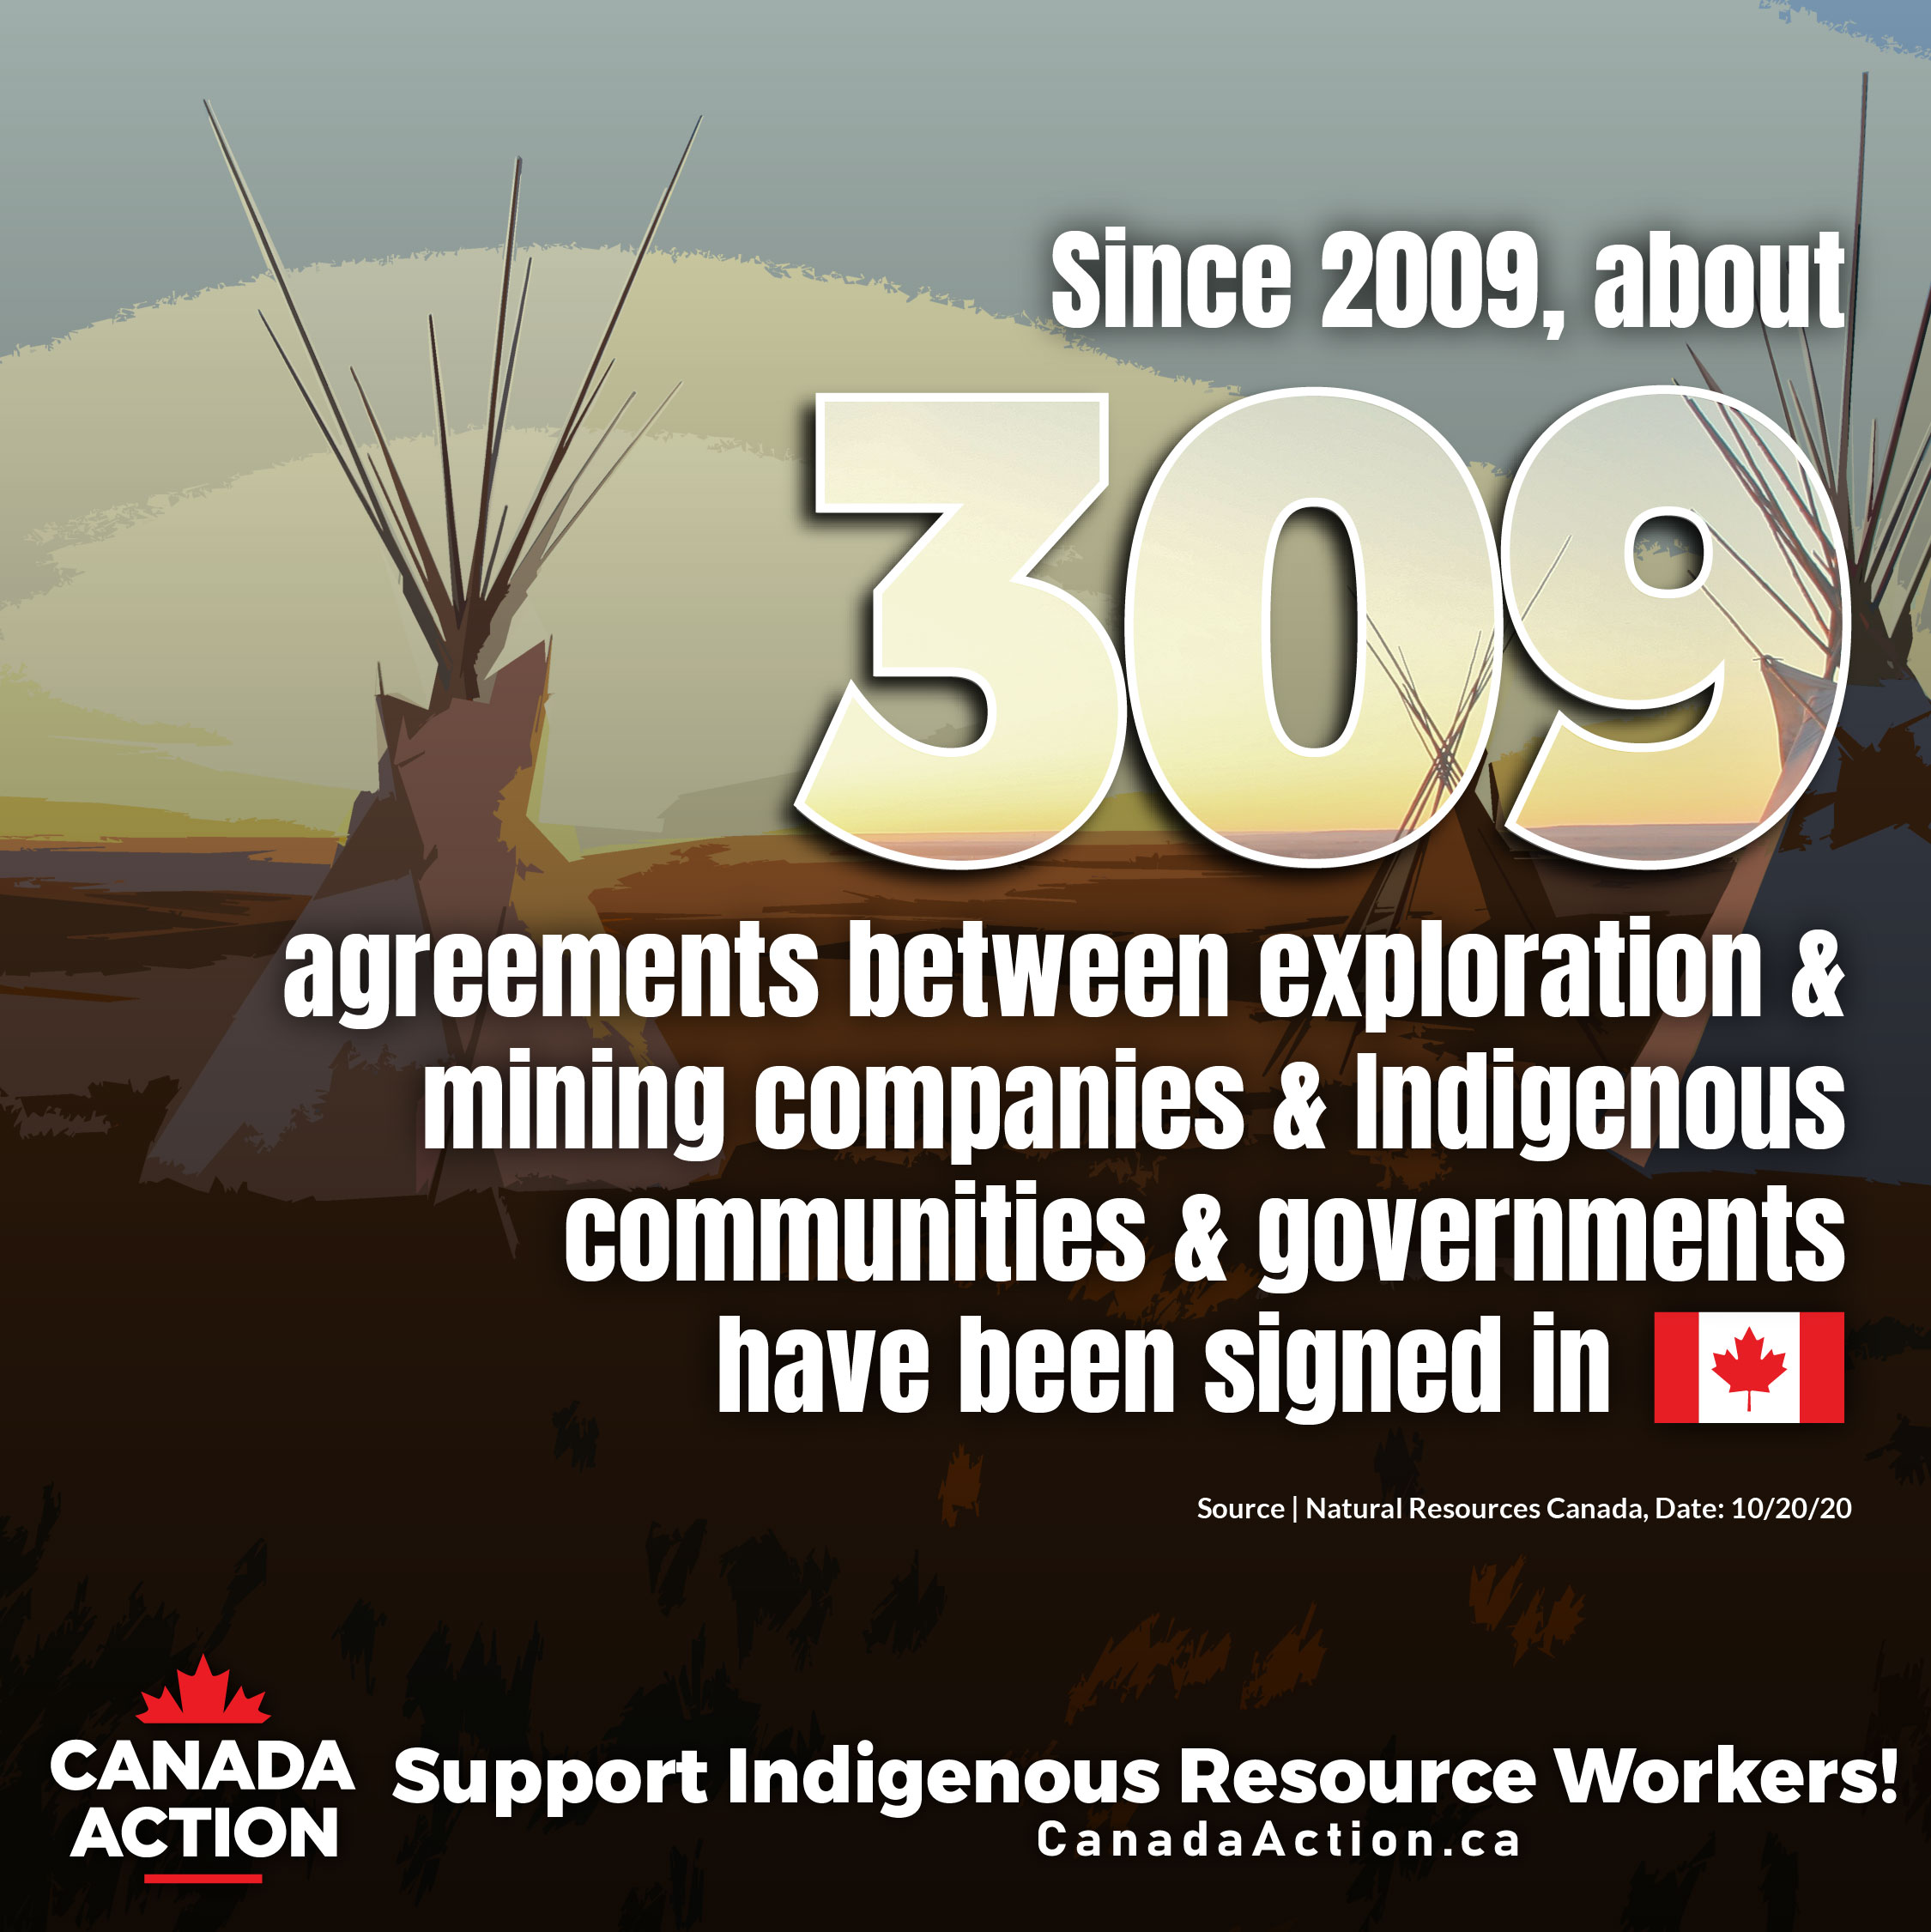 Signed agreements between mining companies and indigenous communities in Canada since 2009